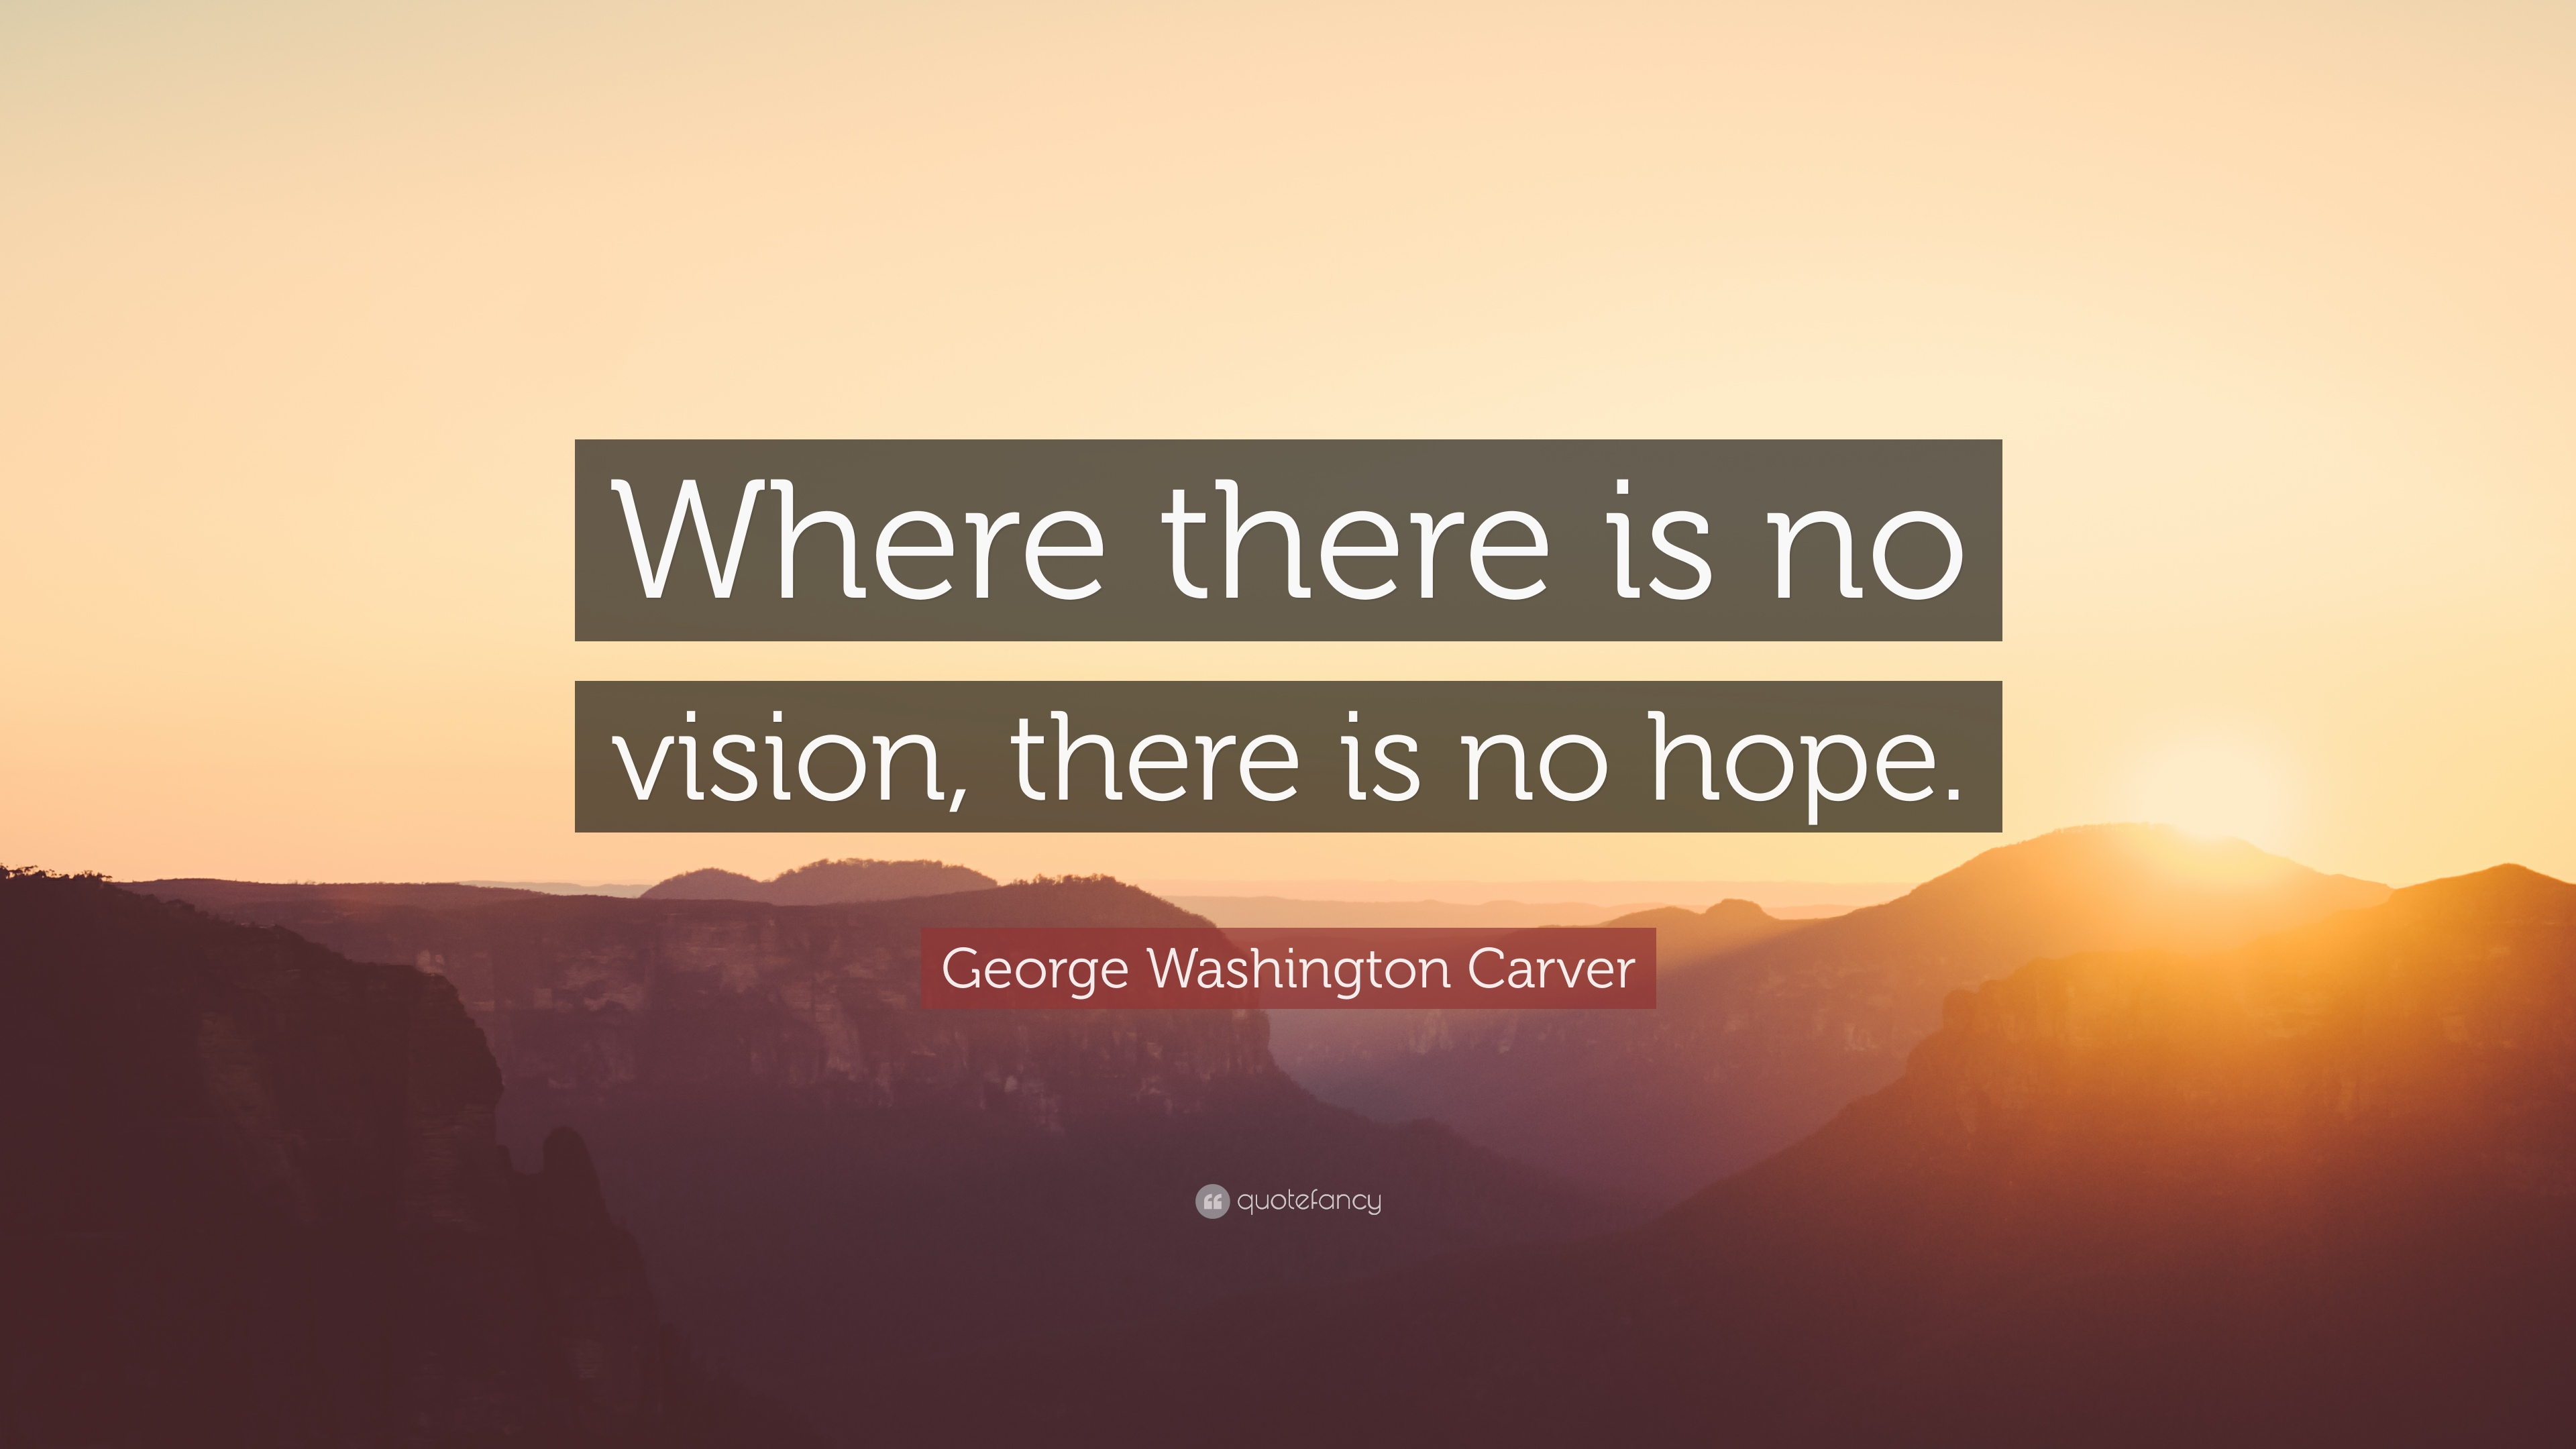 Good Morning Wallpaper With Motivational Quotes George Washington Carver Quote Where There Is No Vision